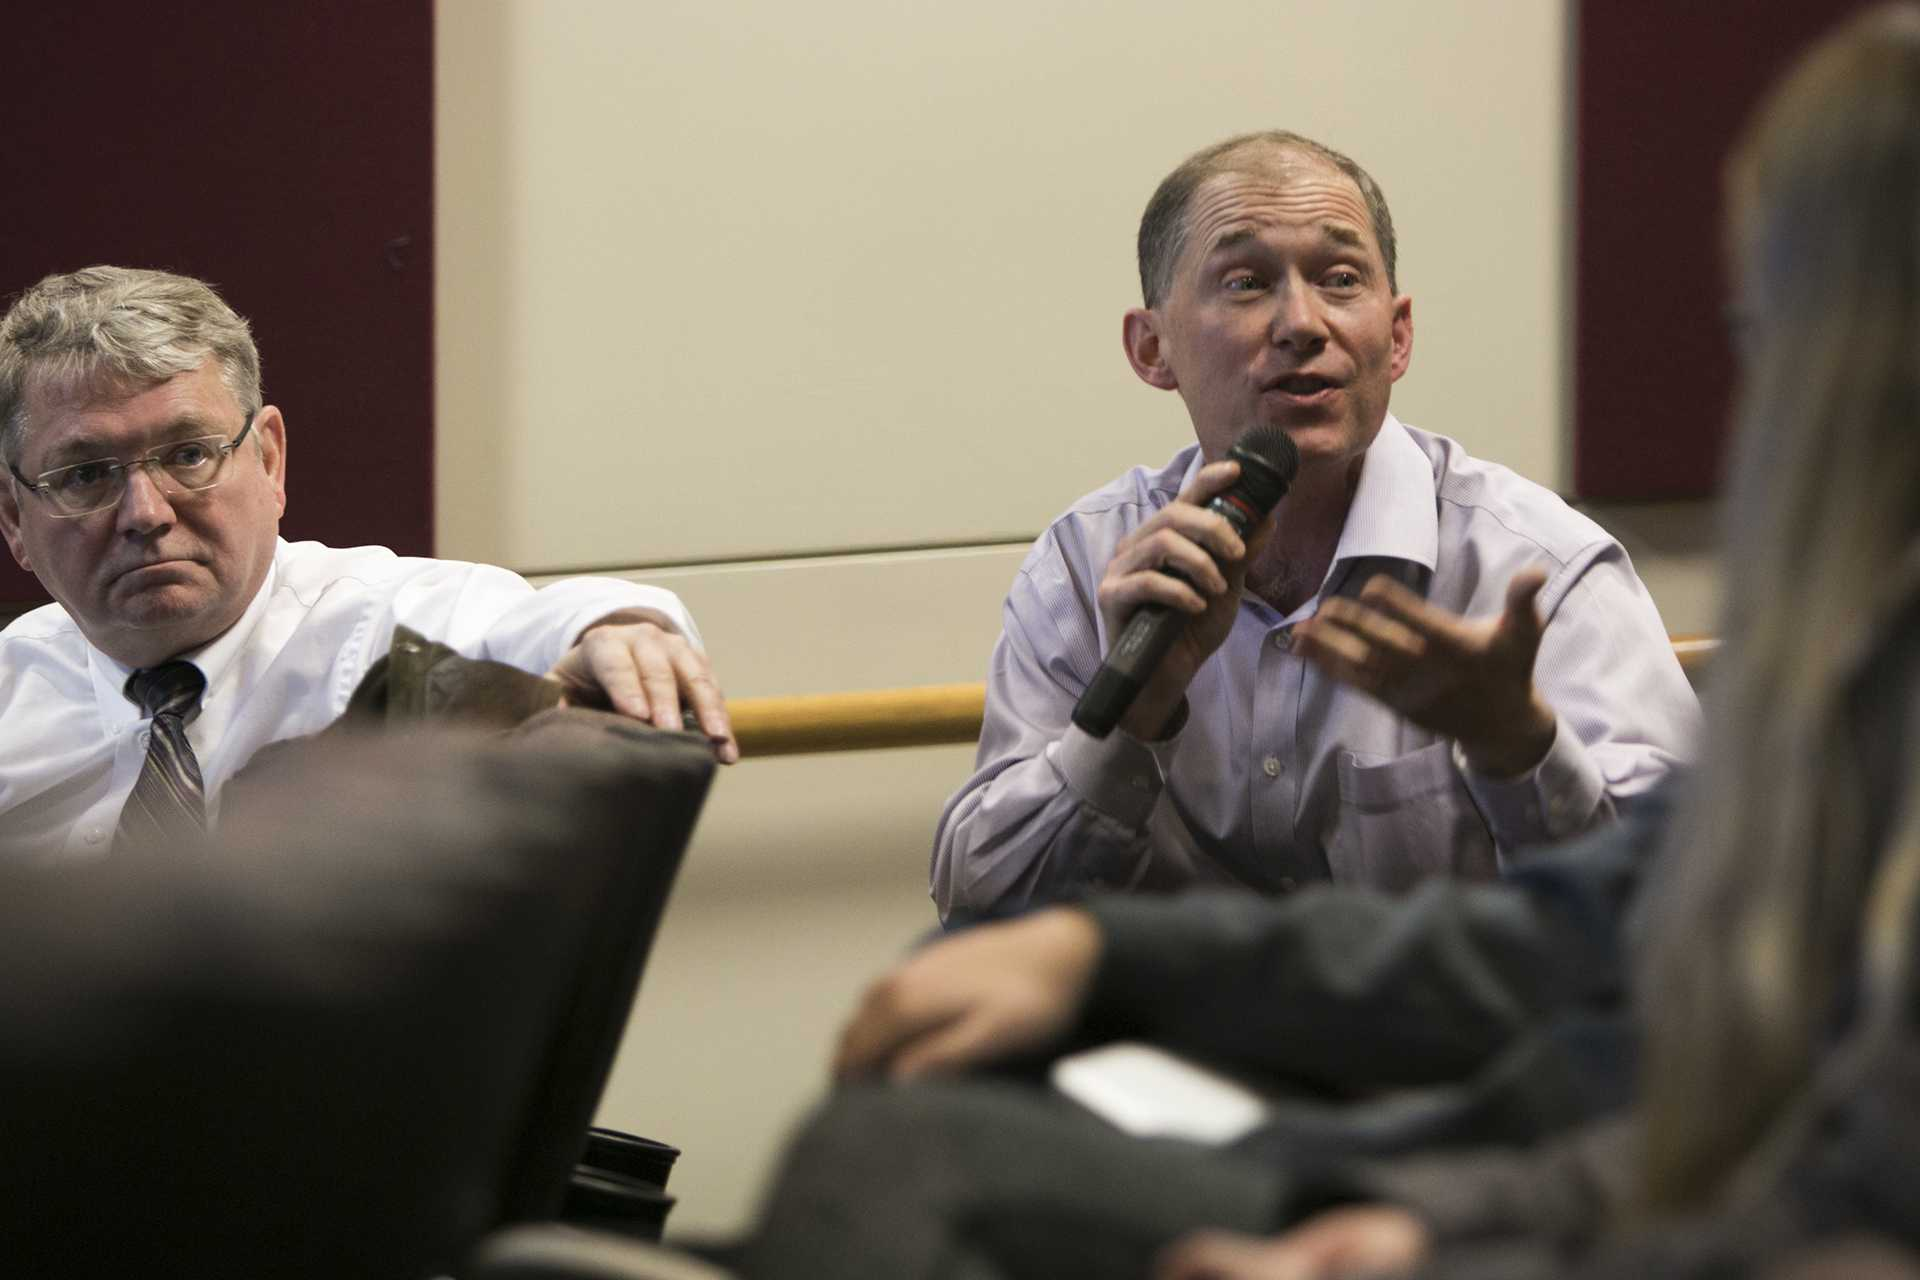 UI Associate Professor of Chemistry Chris Cheatum gestures during a UI 2020 Initiative forum meeting with the Steering Committee in the Iowa Theatre inside the IMU on Monday, Nov. 13, 2017. The committee listened to comment from faculty, staff, students, and community members. (Joseph Cress/The Daily Iowan)